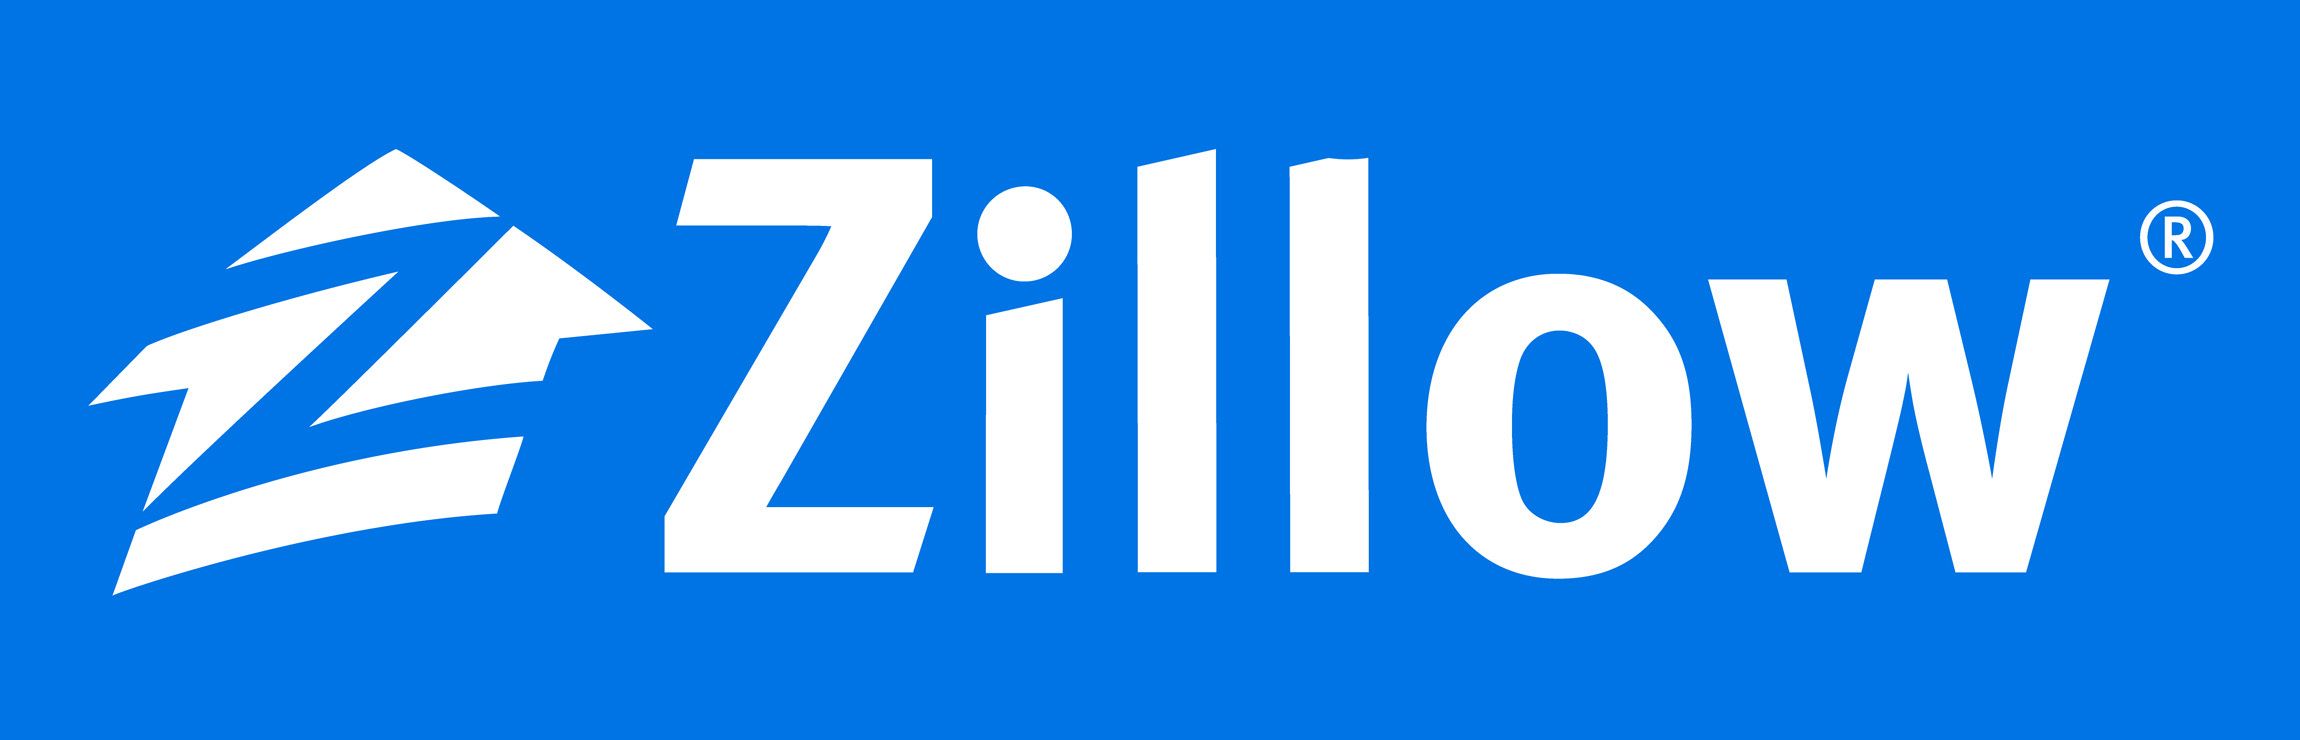 Meaning Zillow logo and symbol.